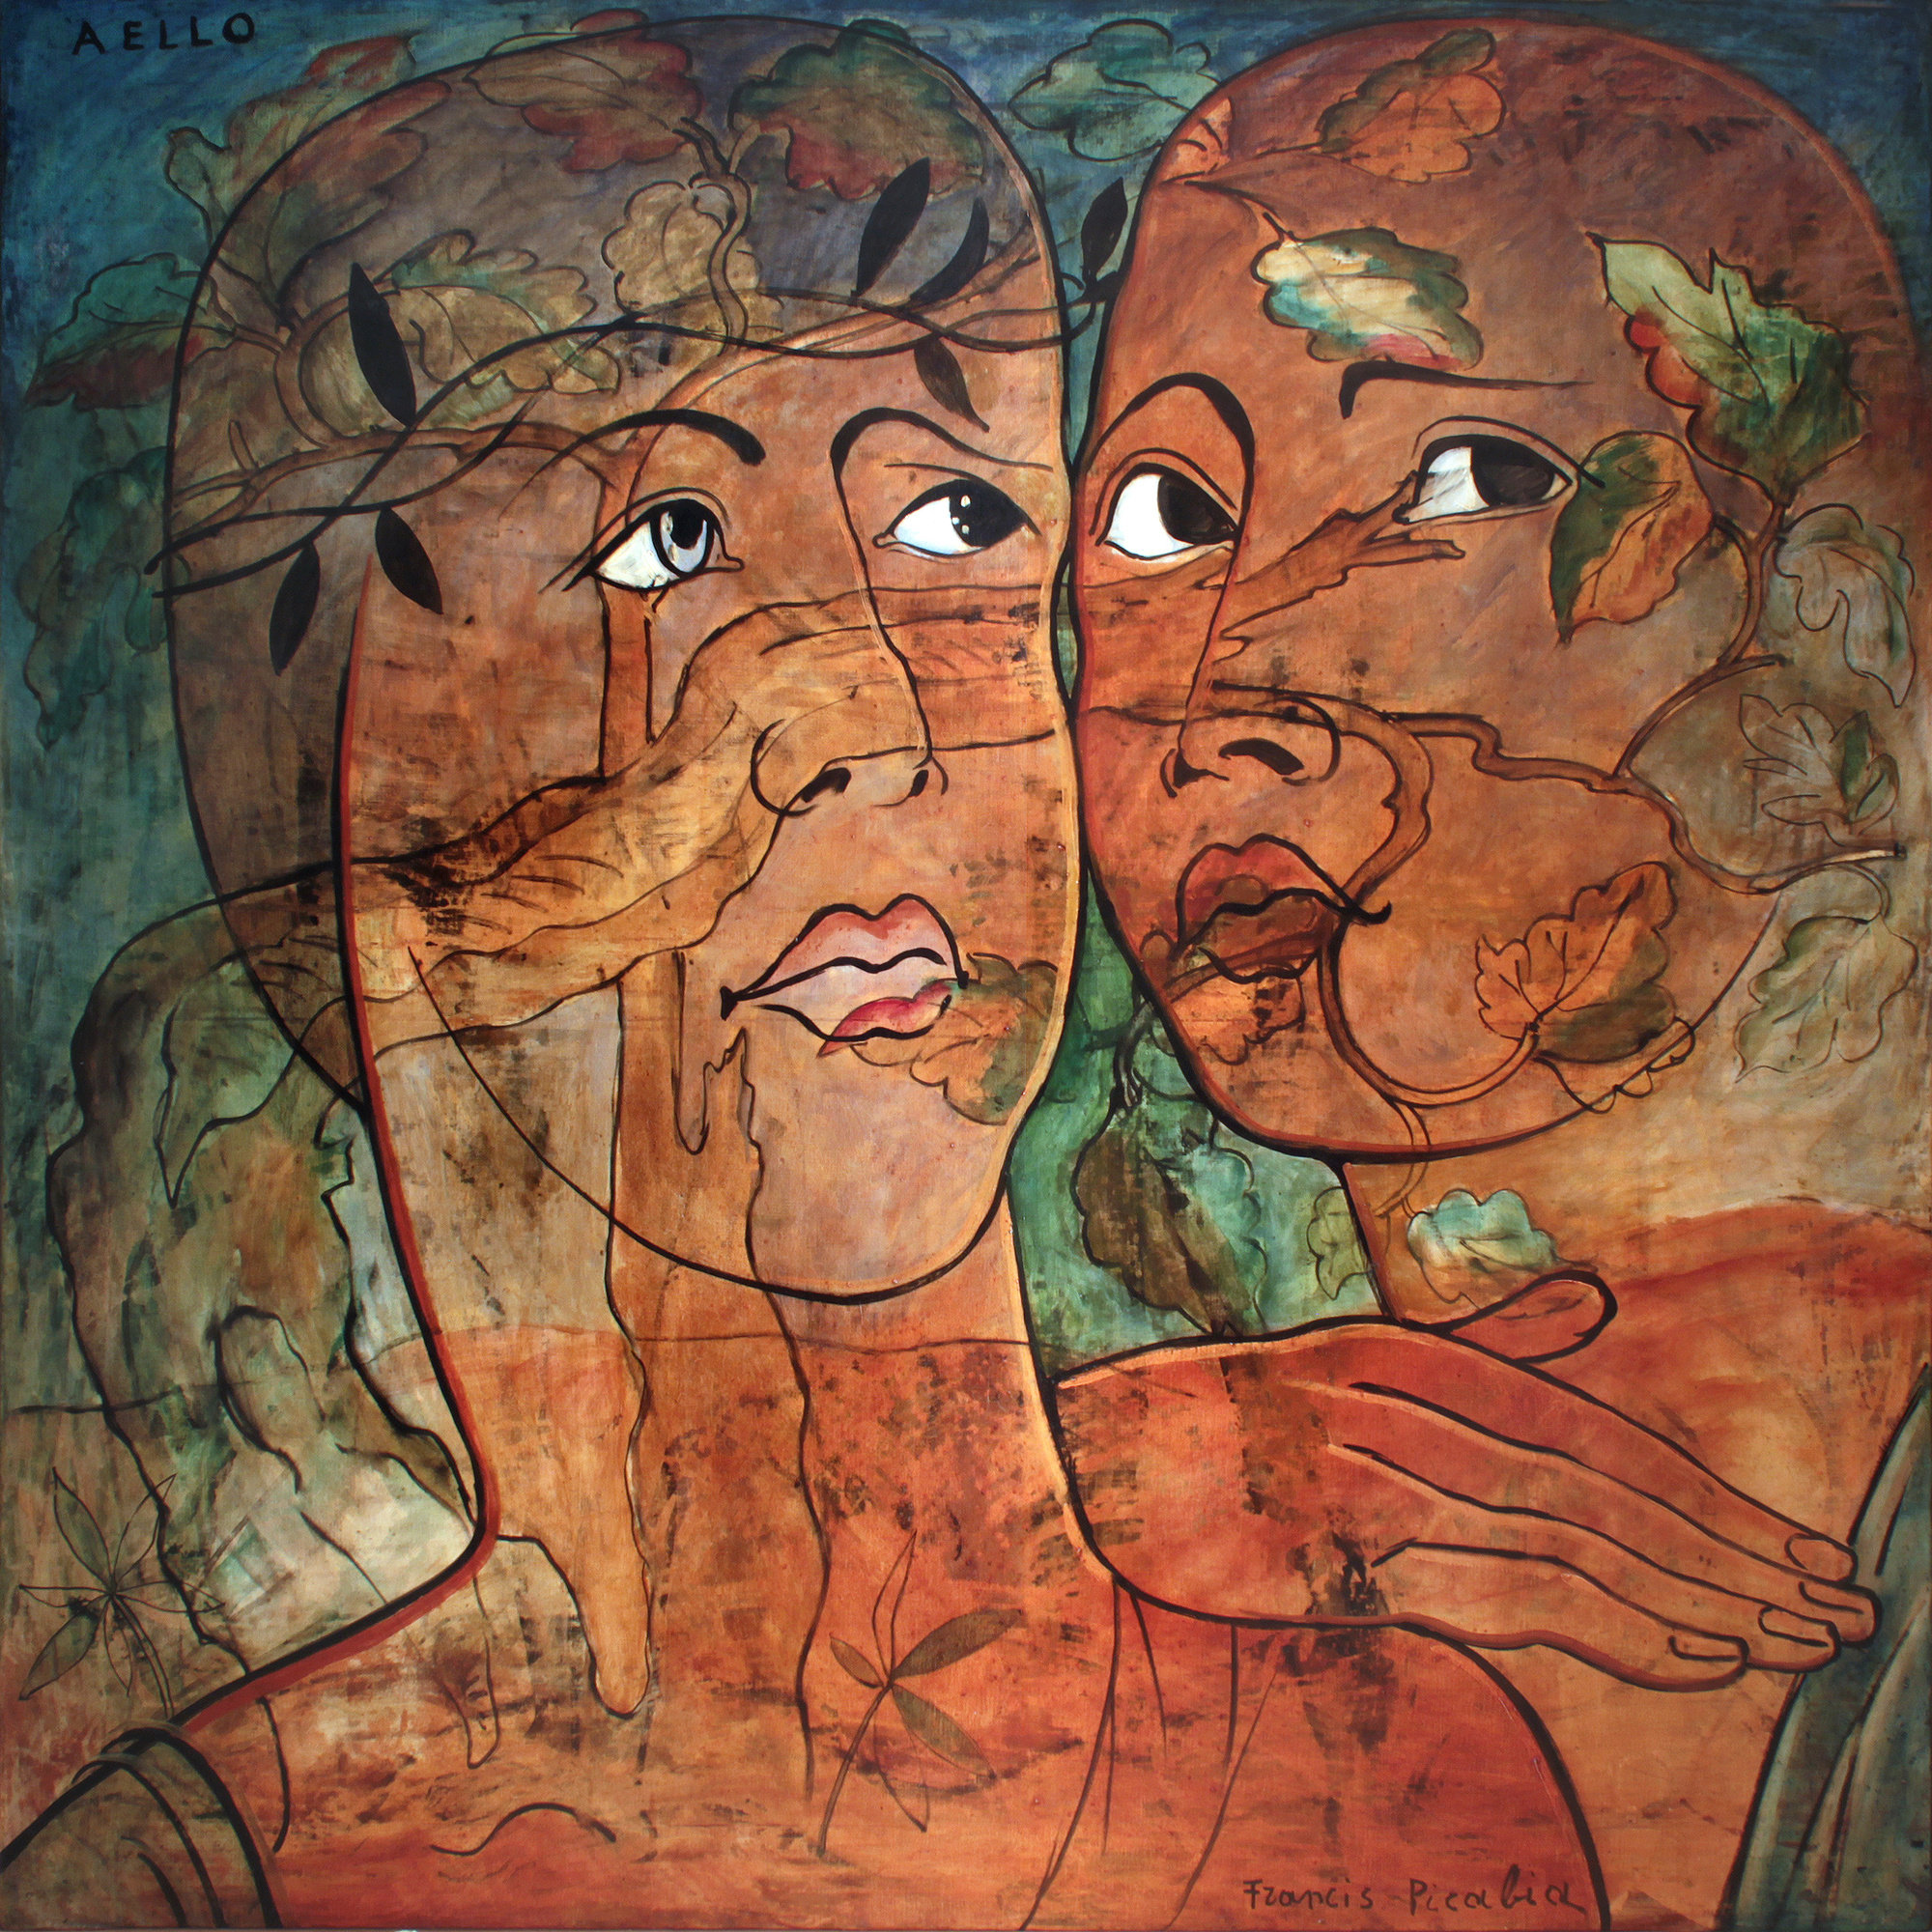 Francis Picabia. Aello. 1930. Oil on canvas, 66 9/16 × 66 9/16″ (169 × 169 cm). Private collection. © 2016 Artist Rights Society (ARS), New York/ADAGP, Paris